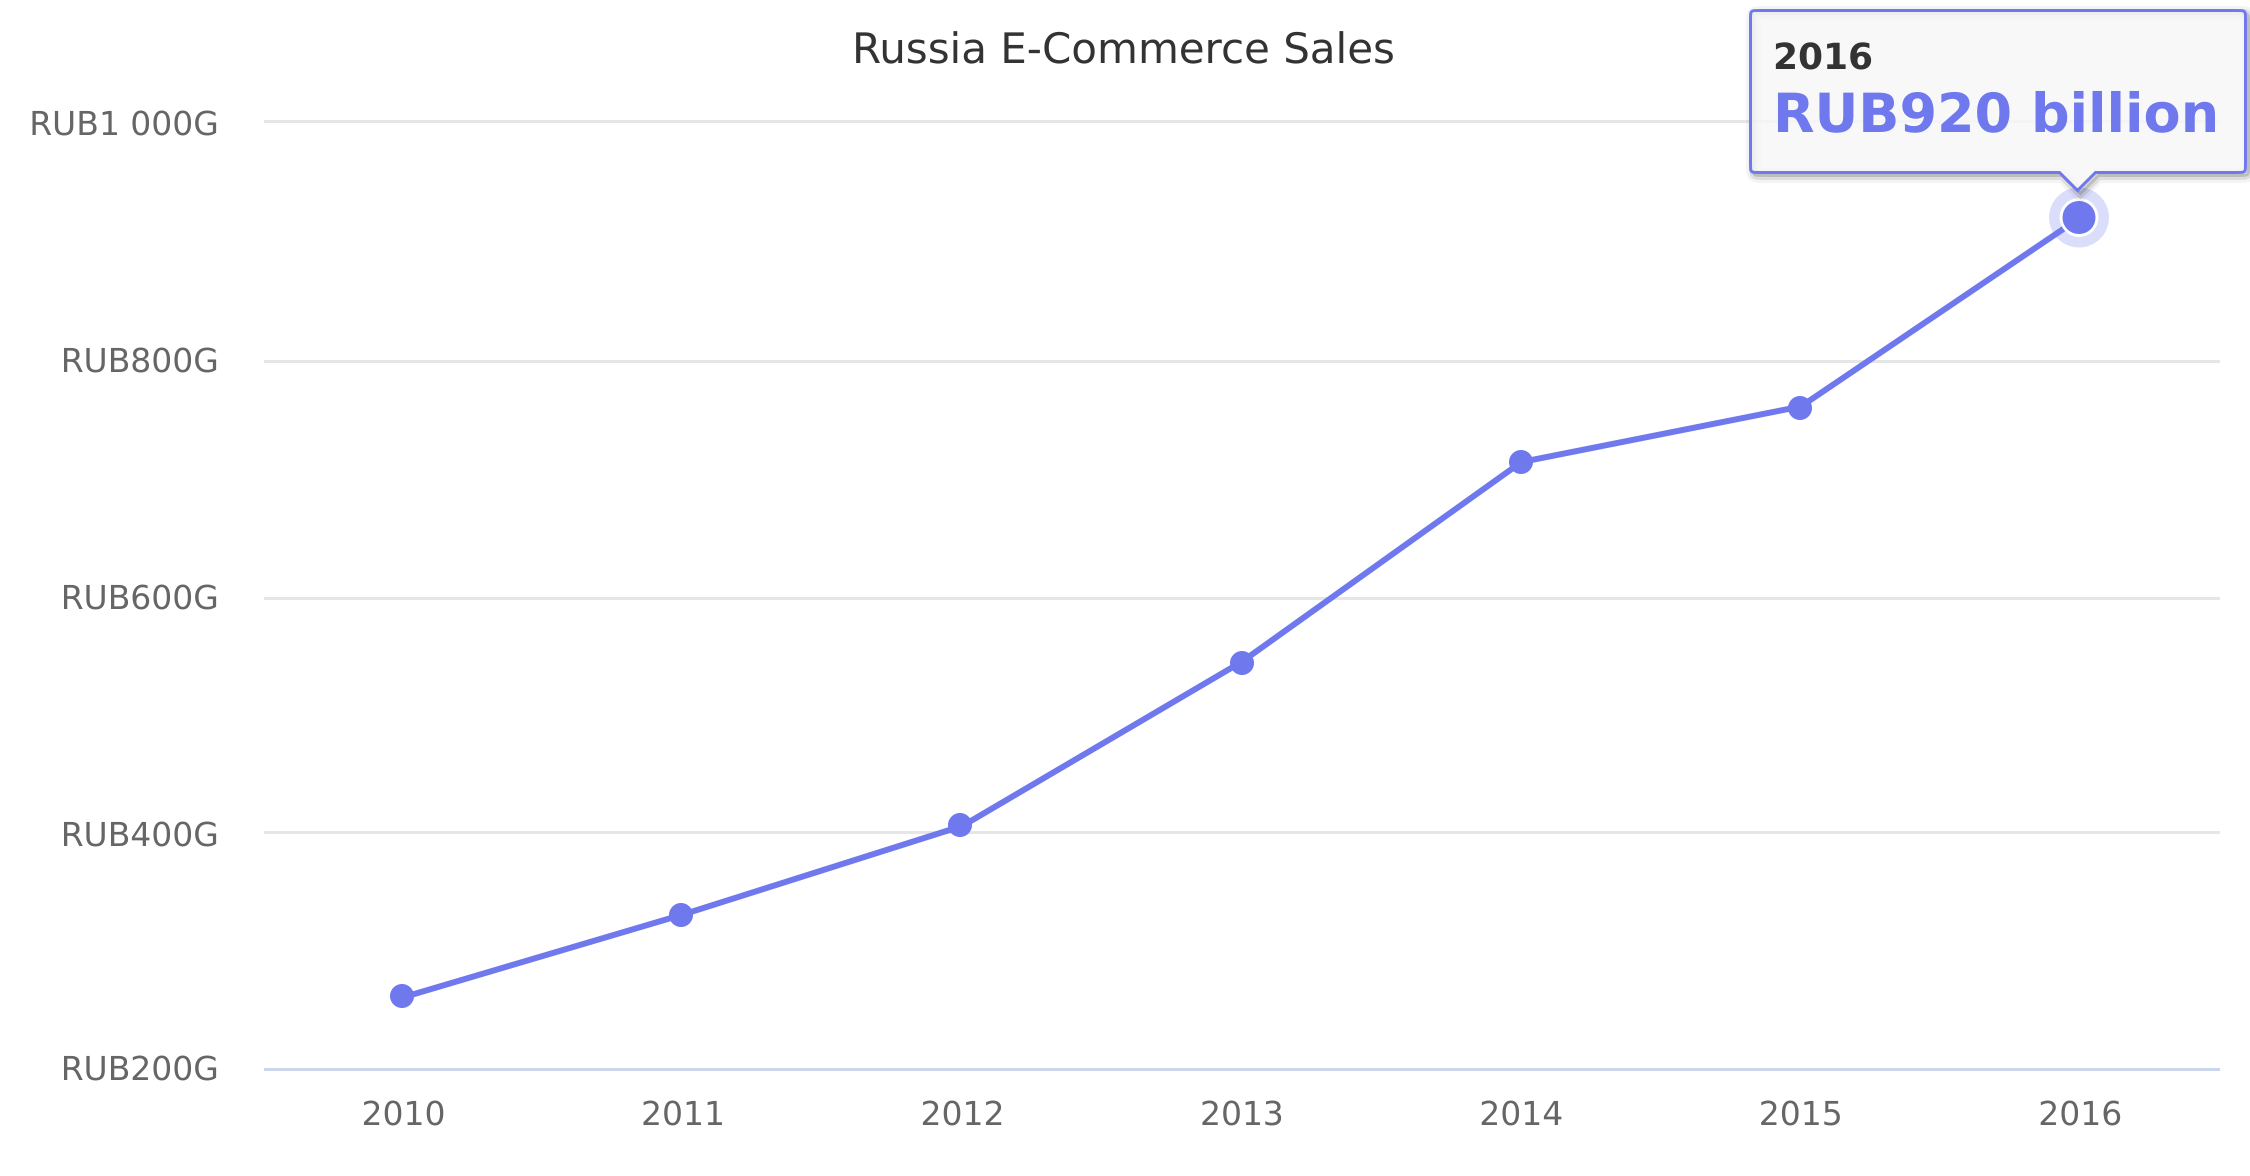 Russia E-Commerce Sales 2010-2016